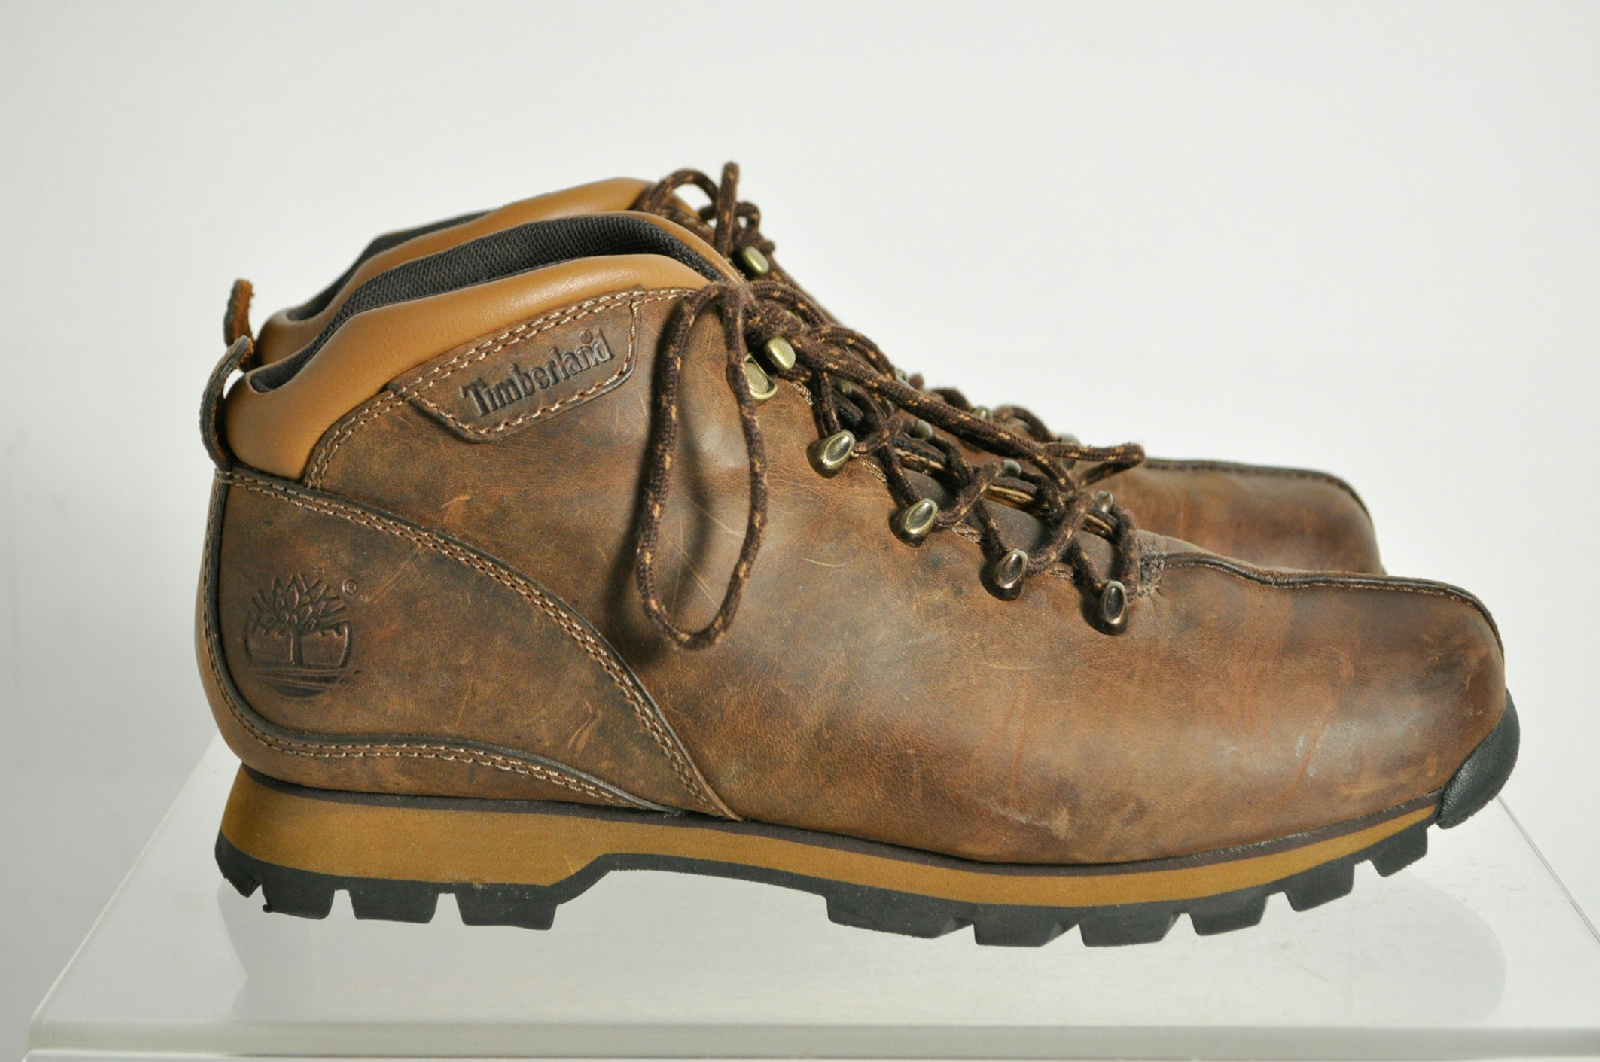 timberland brown hiking boots size 8 m